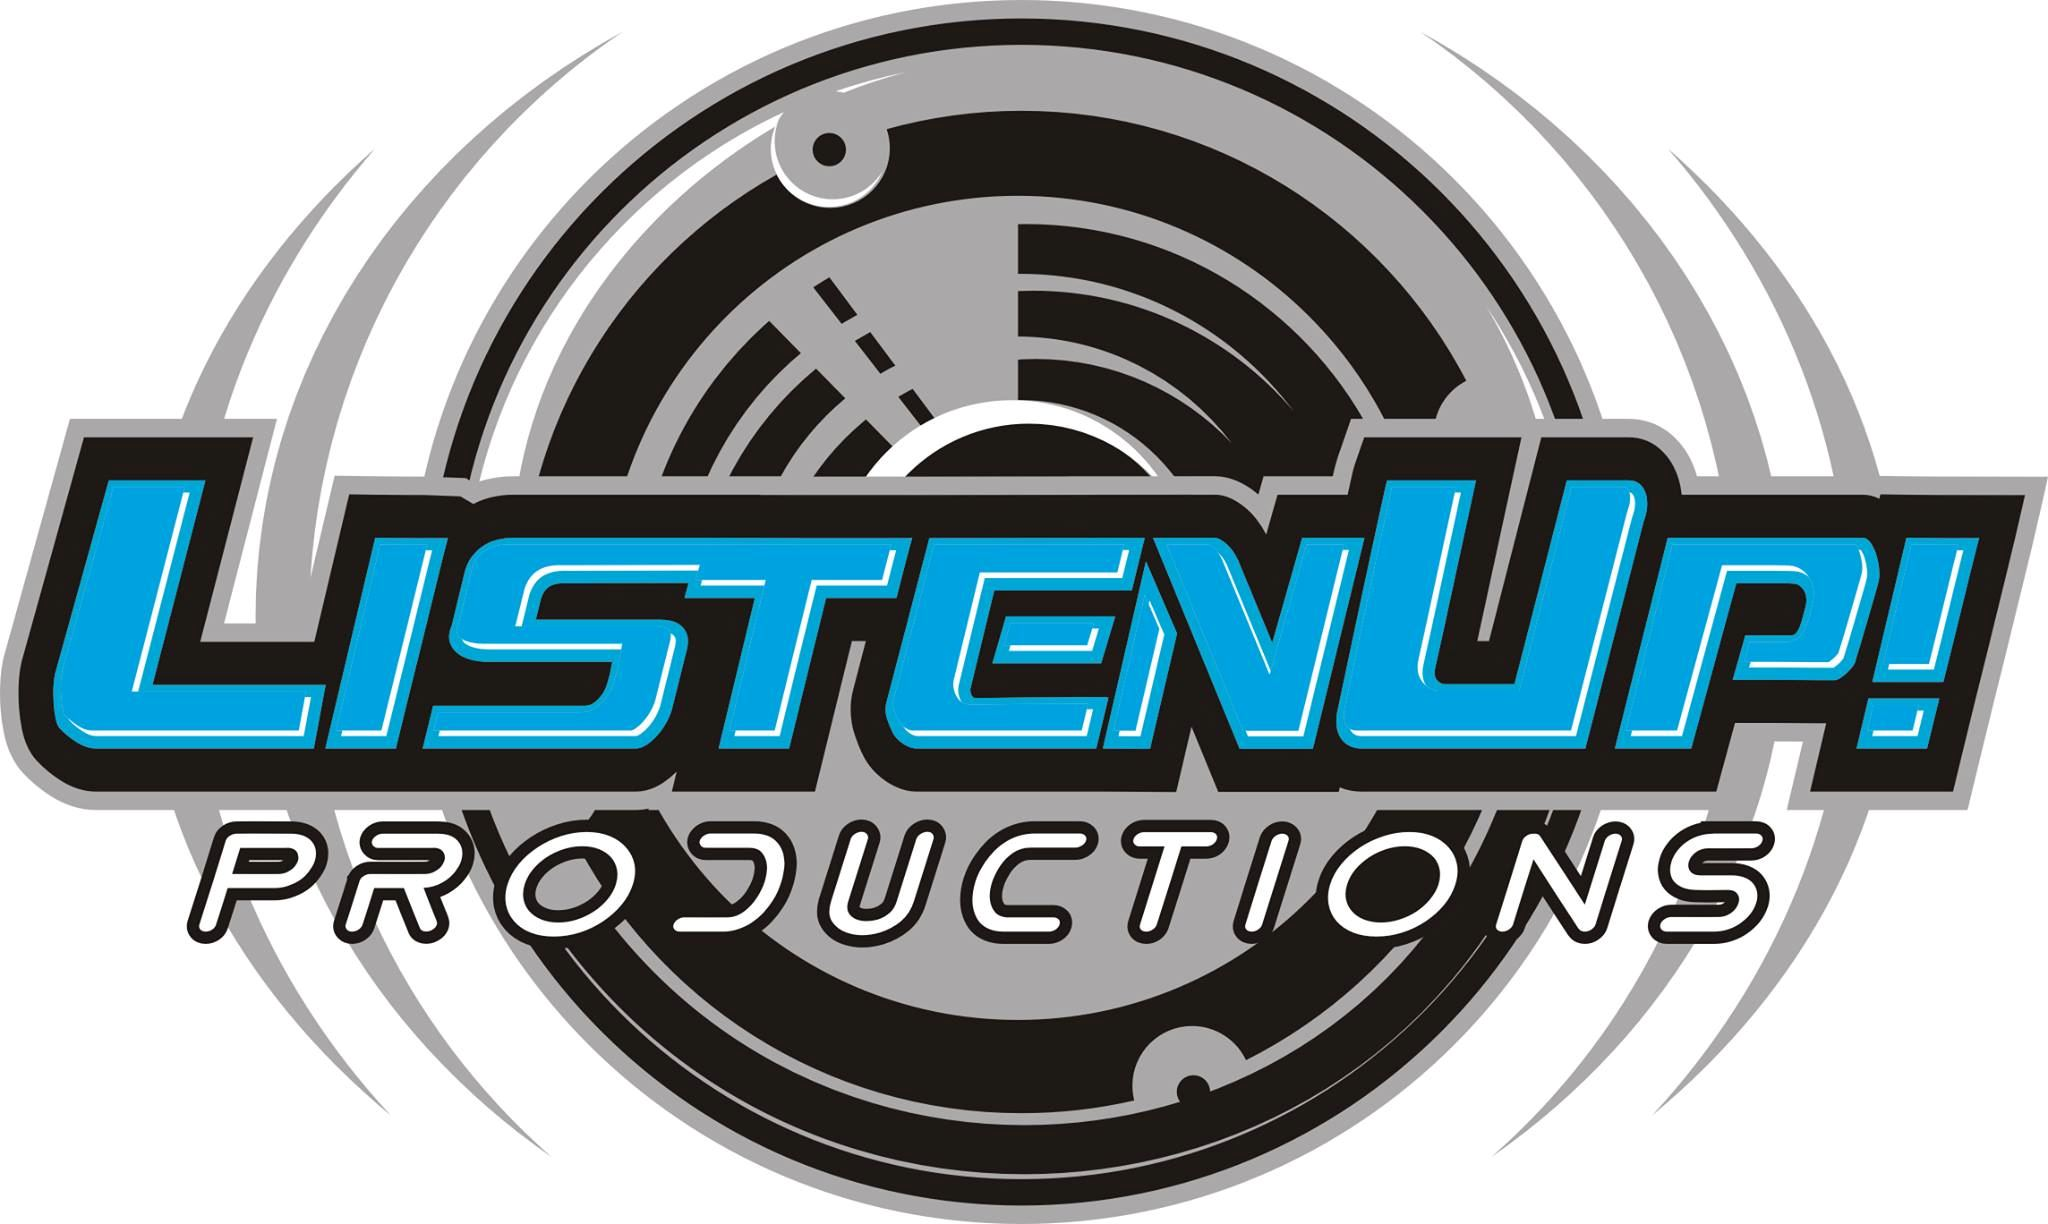 Listen Up Productions - 1